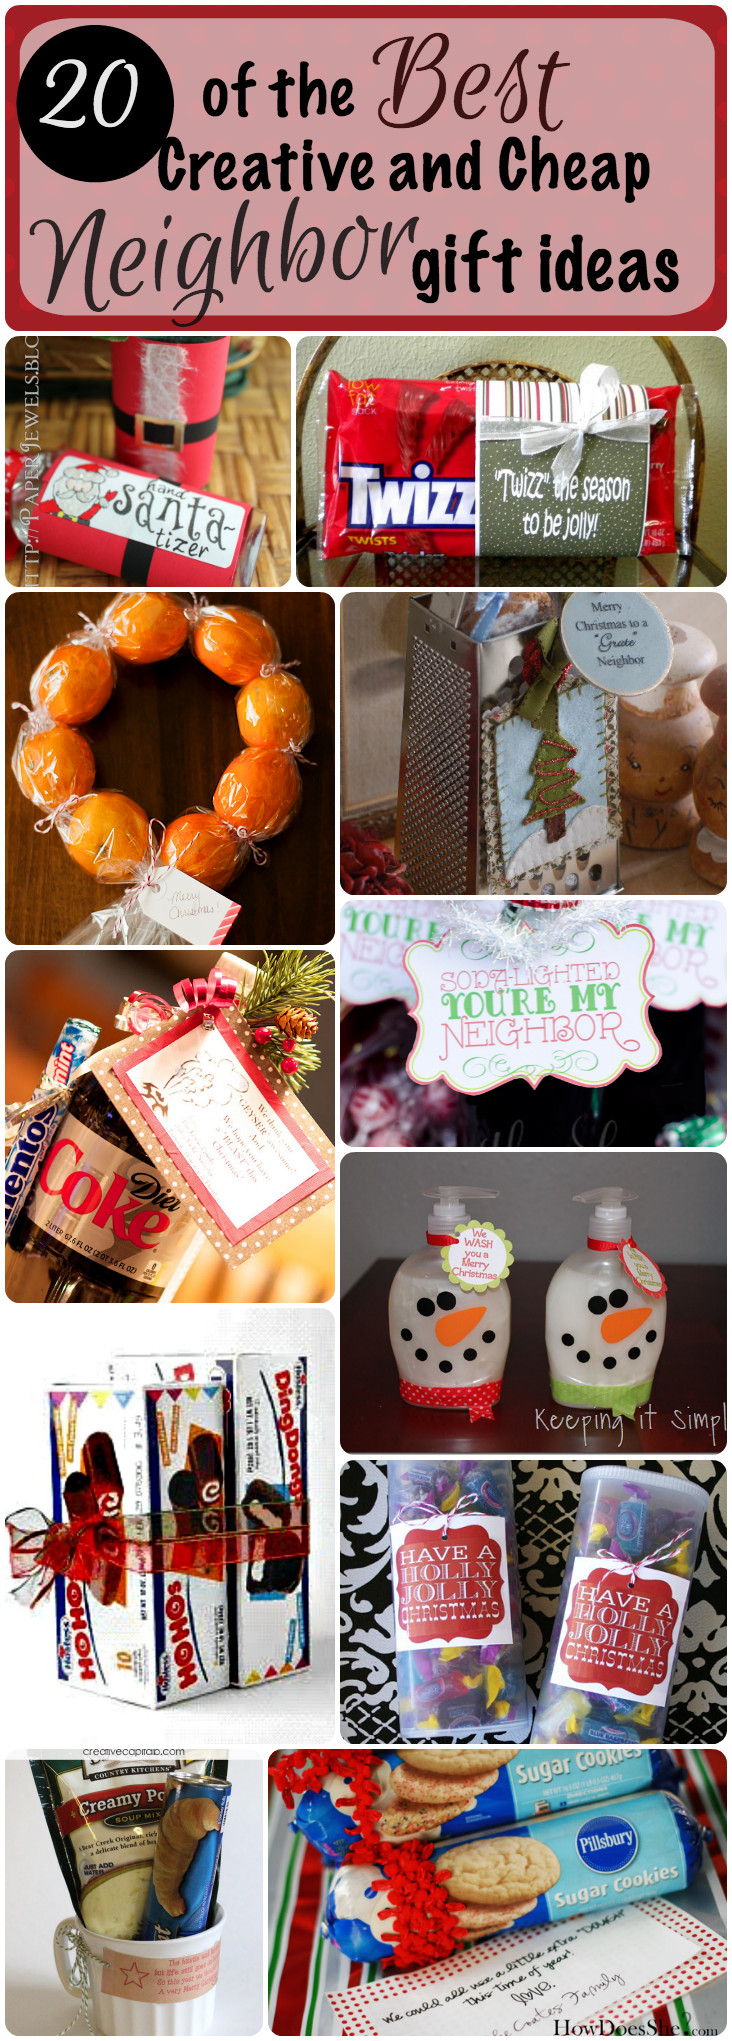 Best ideas about Top Ten Gift Ideas For Neighbors . Save or Pin 20 of the Best Creative and Cheap Neighbor Gifts for Christmas Now.